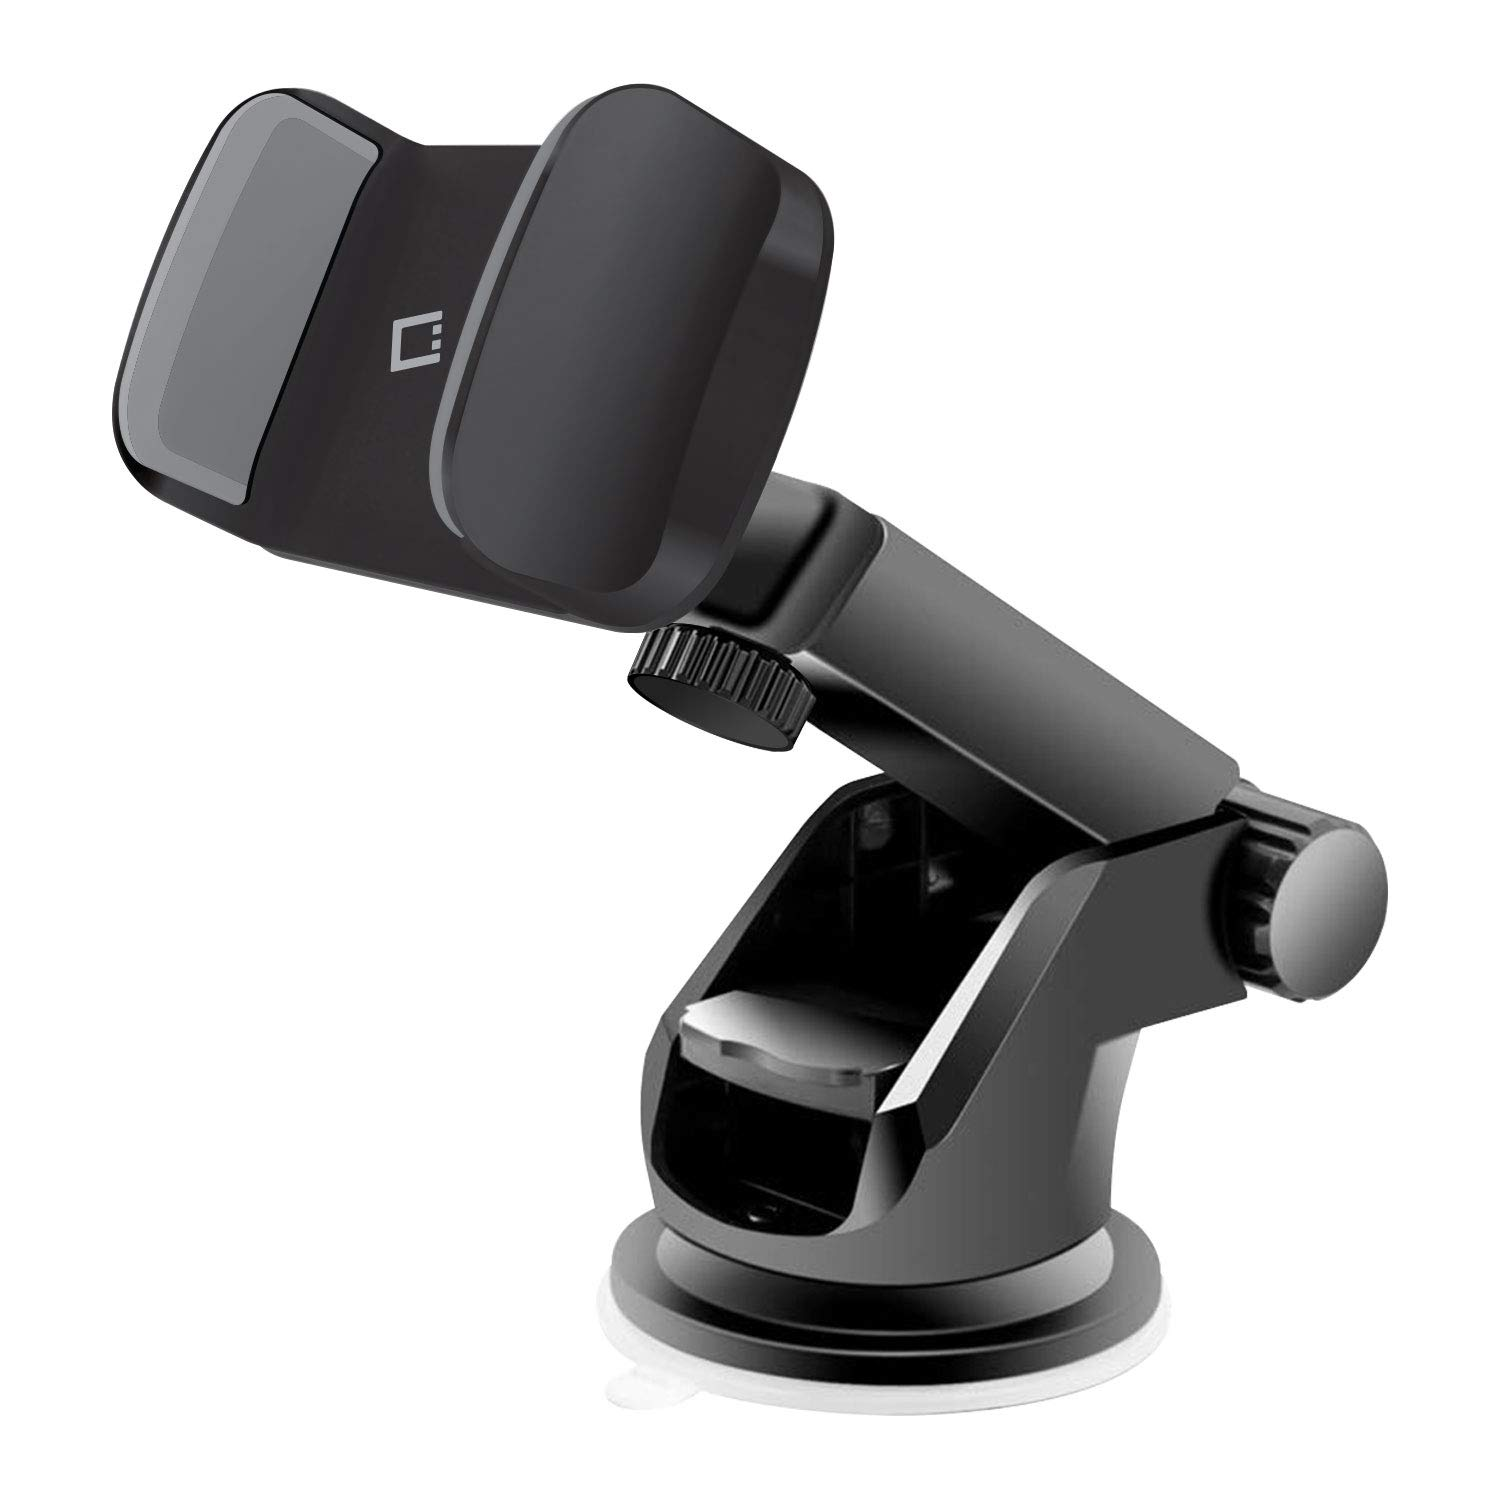 Cellet Heavy Duty Dashboard//Windshield Phone Holder Mount Cradle Stand with 360 Rotating Adjustable Reusable Sticky Suction Pad Compatible with Apple iPhone 11 Pro Max 11 X XR XS 8 Plus